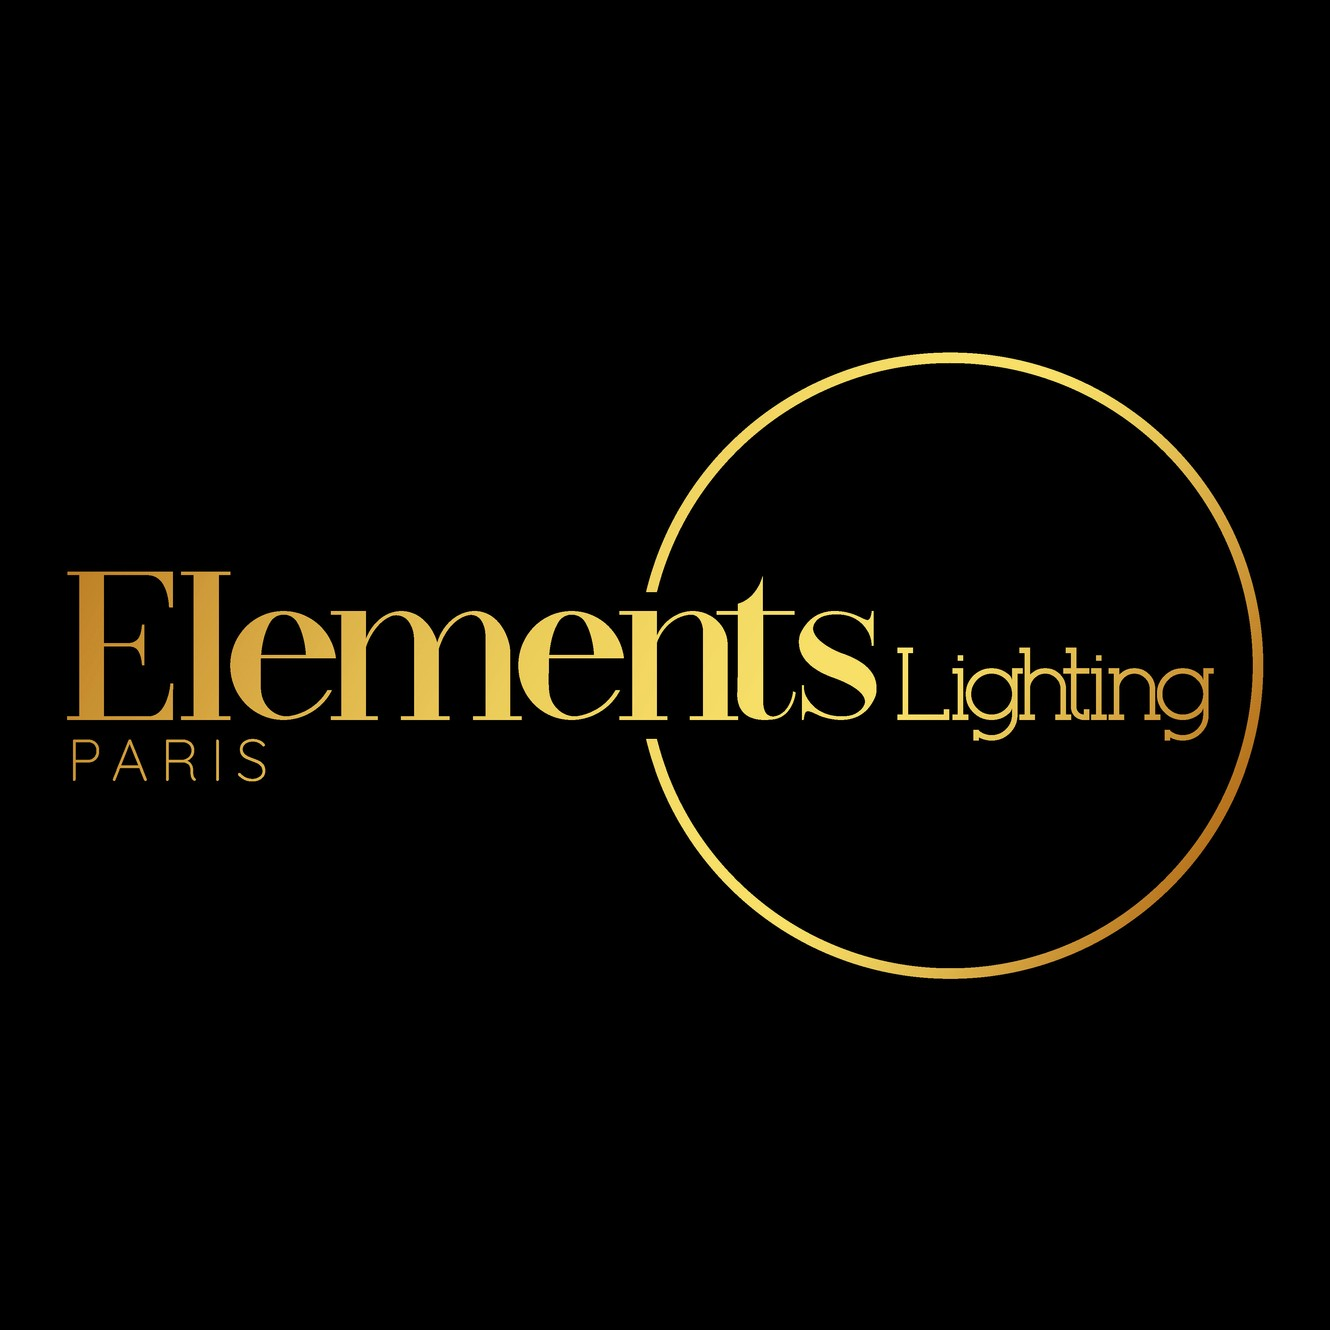 Elements Lighting